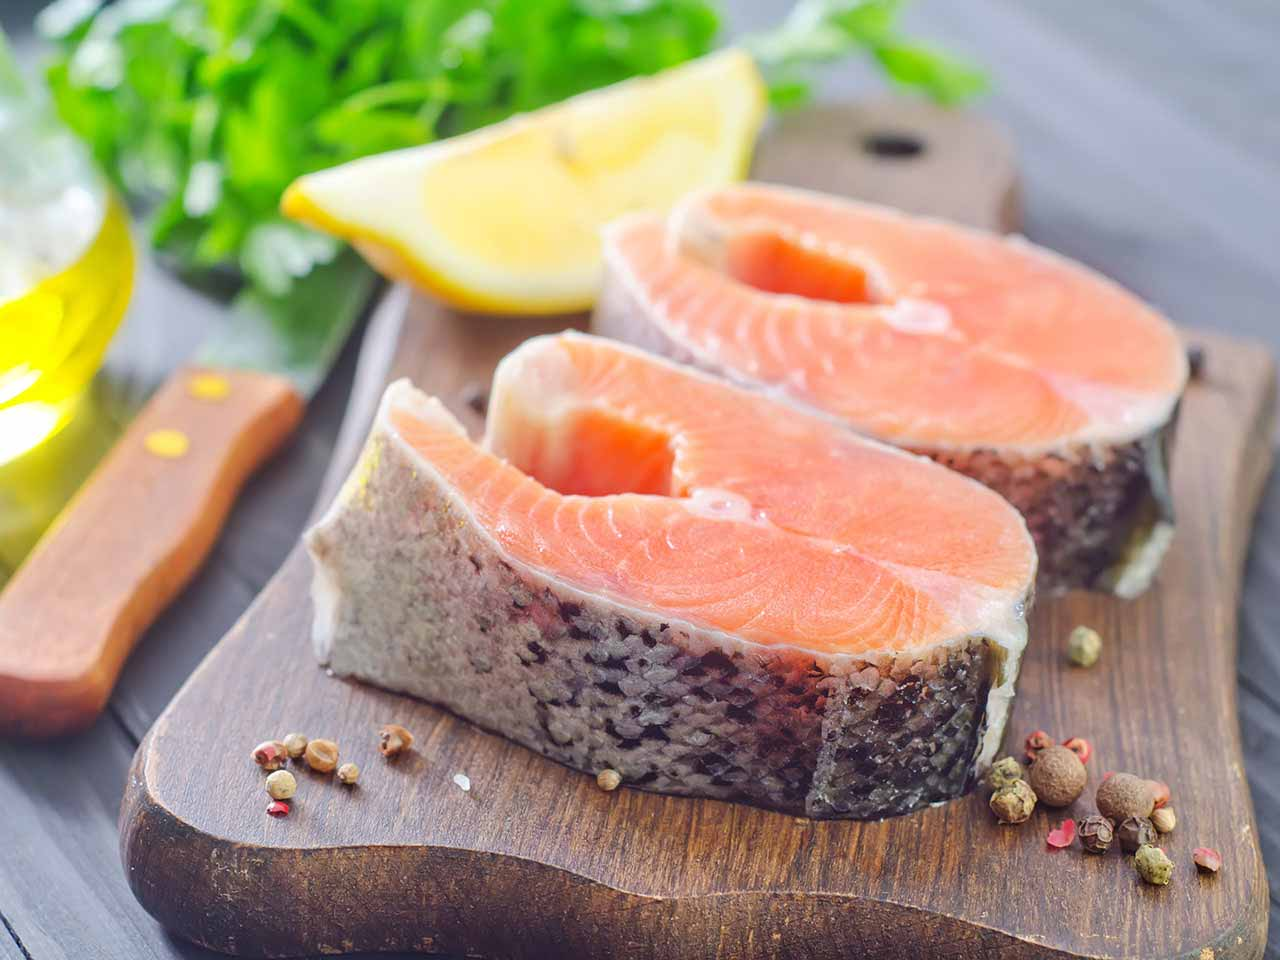 Two salmon steaks packed withe healthy fatty acids